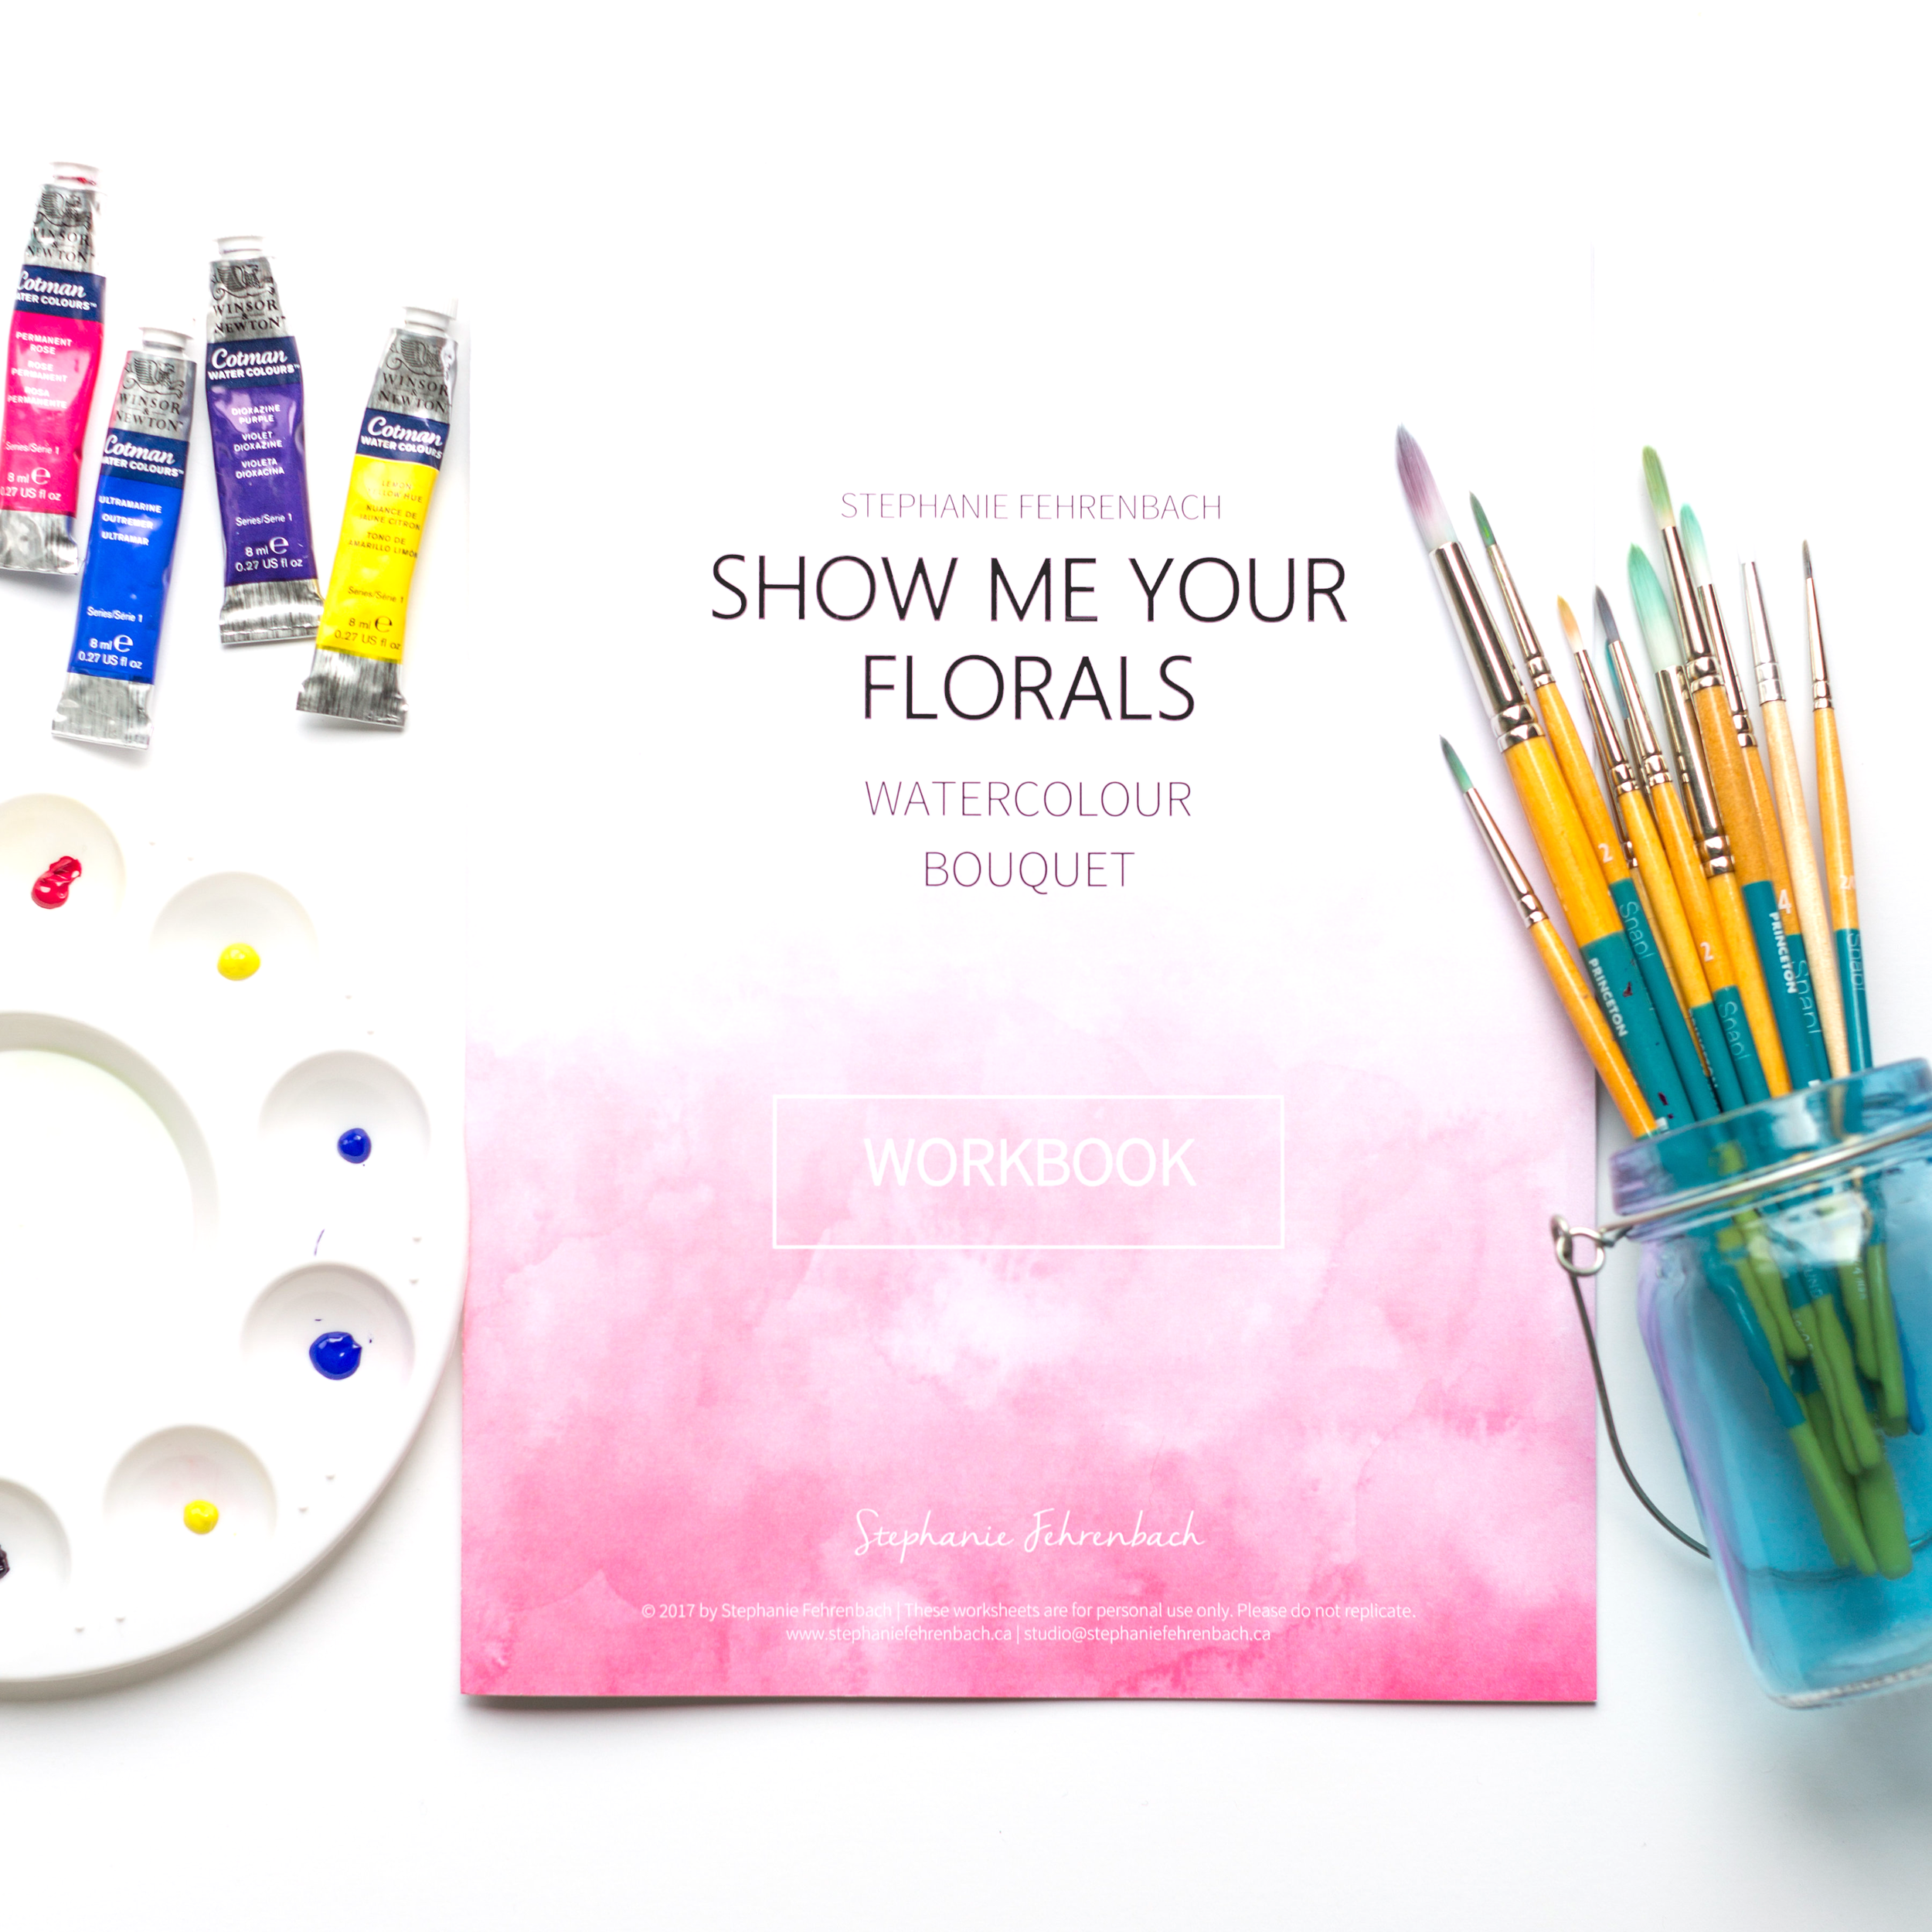 Floral Bouquet Workbook